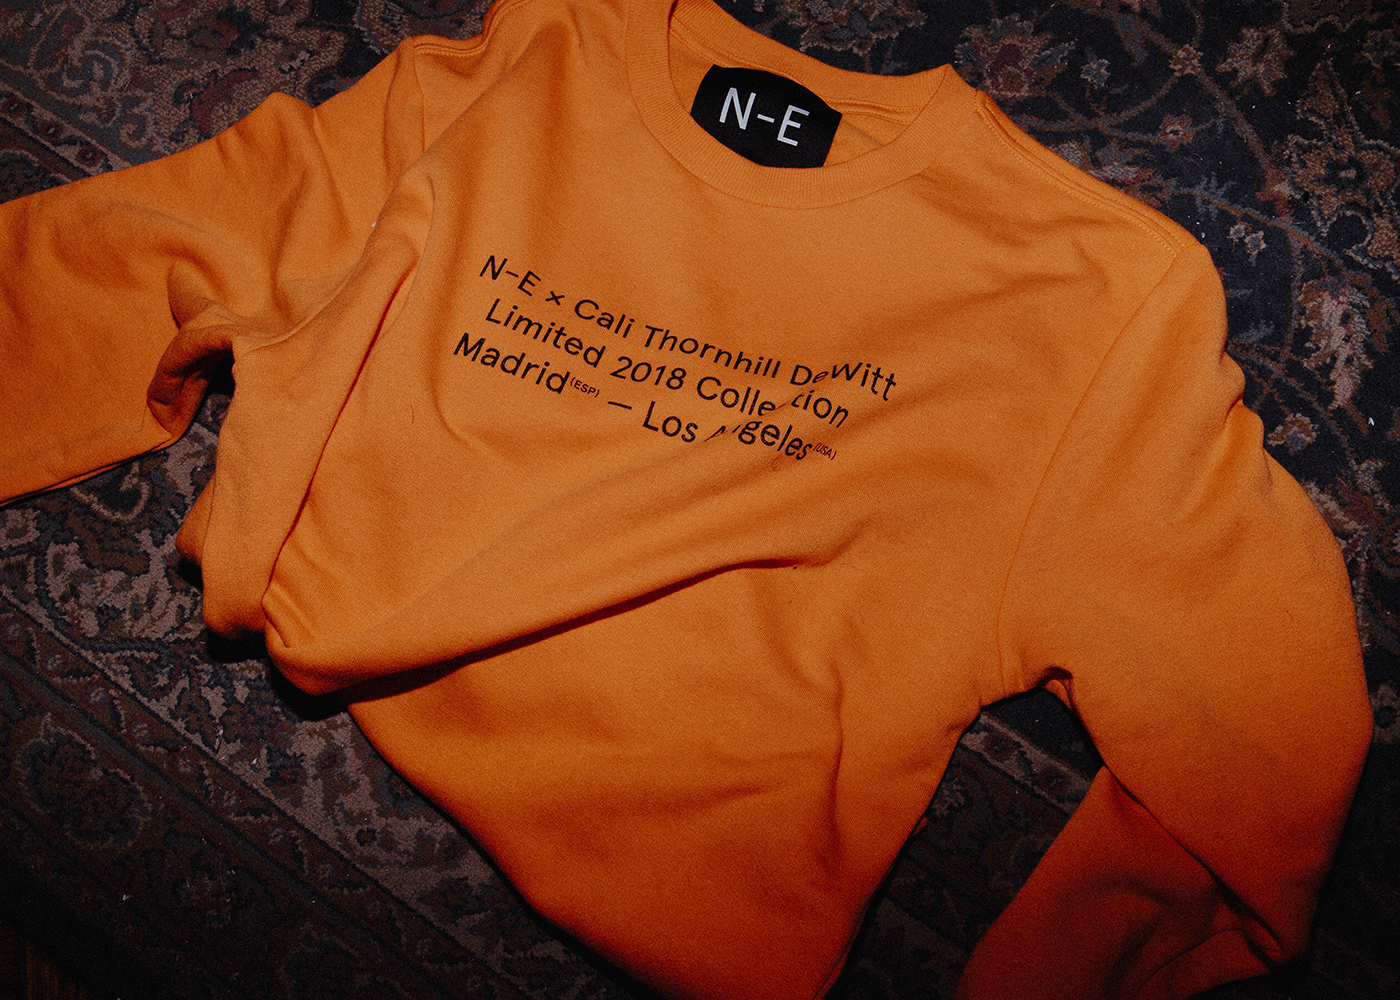 N-E × Cali Thornill Dewitt (Orange Sweater)